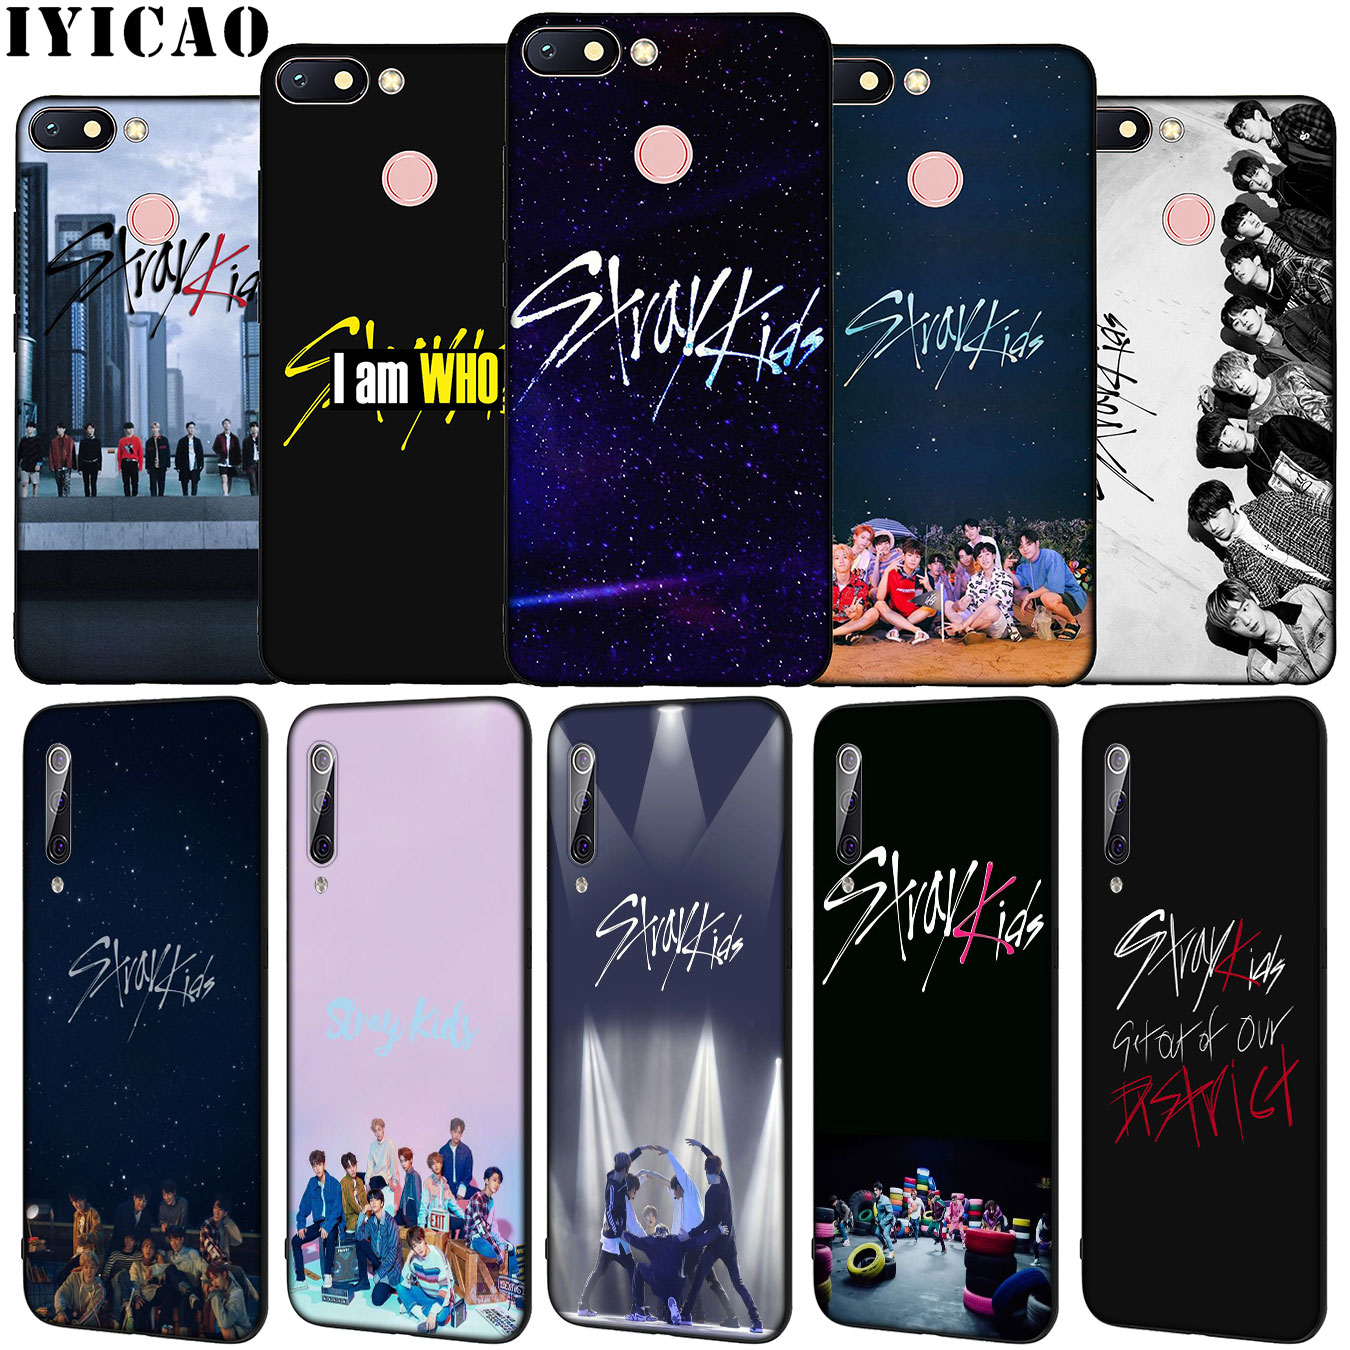 IYICAO Hot POP <font><b>KPOP</b></font> Stray Kids Soft Silicone Phone <font><b>Case</b></font> for Xiaomi <font><b>Redmi</b></font> 8A 7A 6A 5A K20 S2 4A 4X <font><b>Note</b></font> 8 <font><b>7</b></font> 6 Pro 5 Plus Cover image